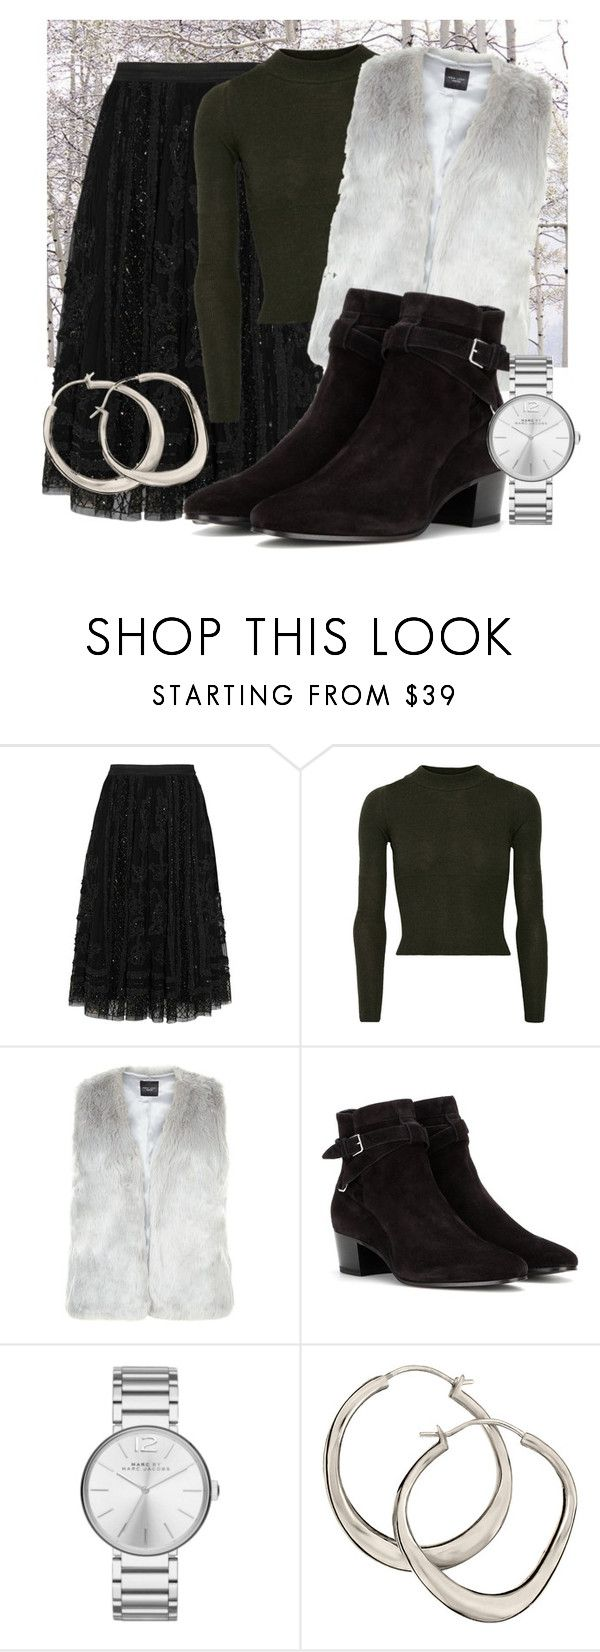 """""""Slytherin: Winter"""" by missgranger ❤ liked on Polyvore featuring Needle & Thread, MM6 Maison Margiela, Yves Saint Laurent, Marc Jacobs, Dinny Hall, Winter, slytherin, Sweater and midiskirt"""